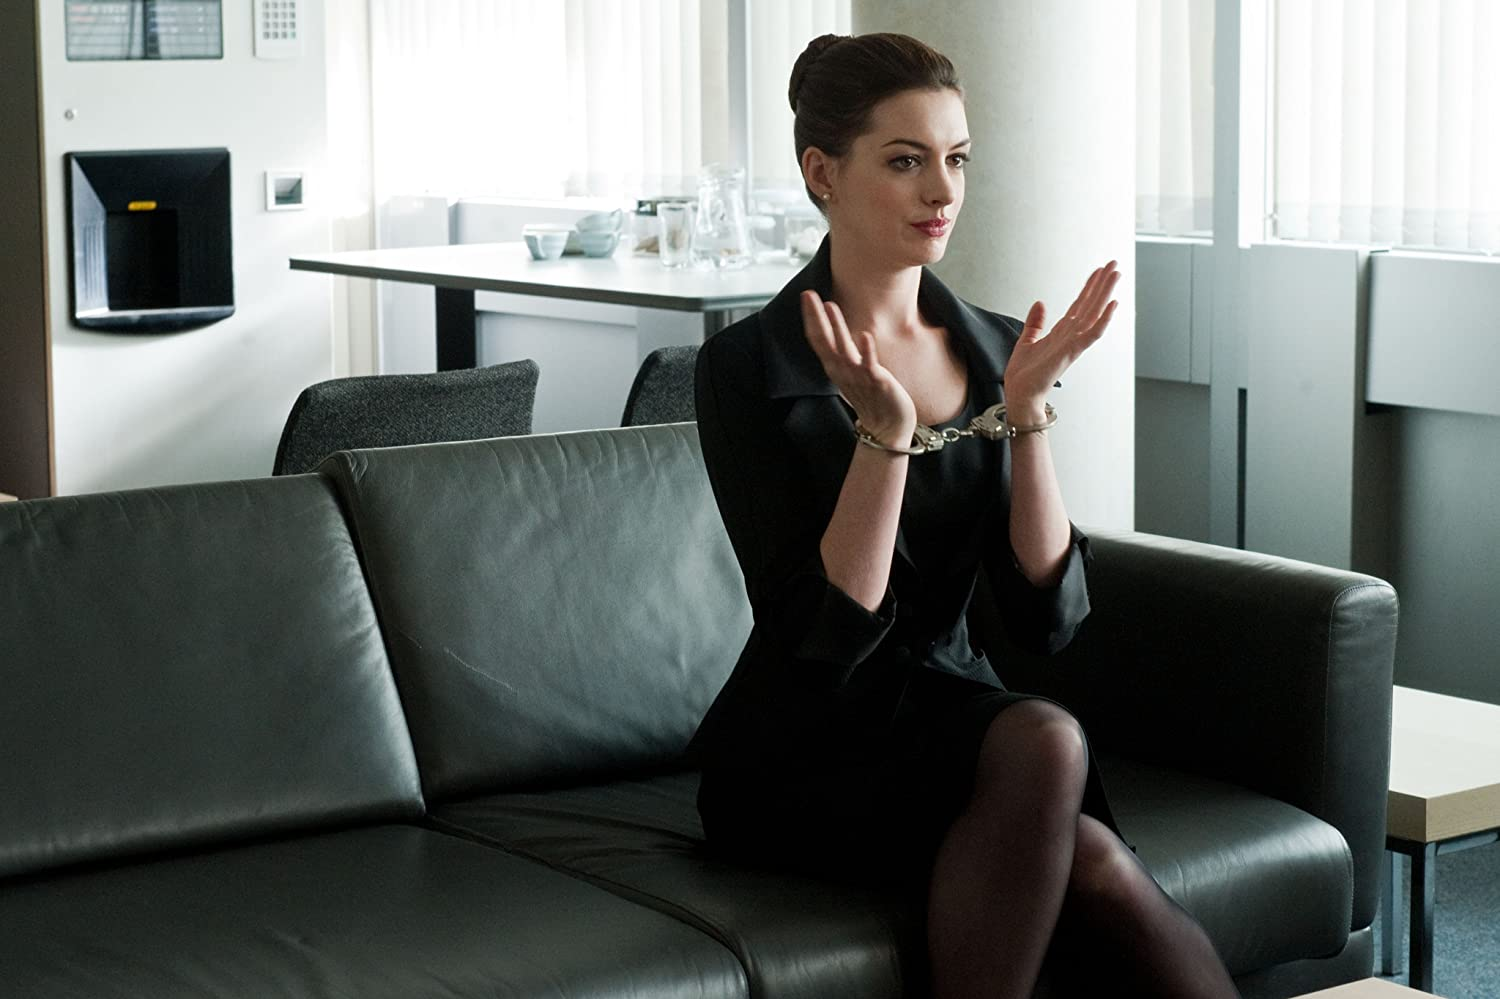 Anne Hathaway in The Dark Knight Rises (2012)